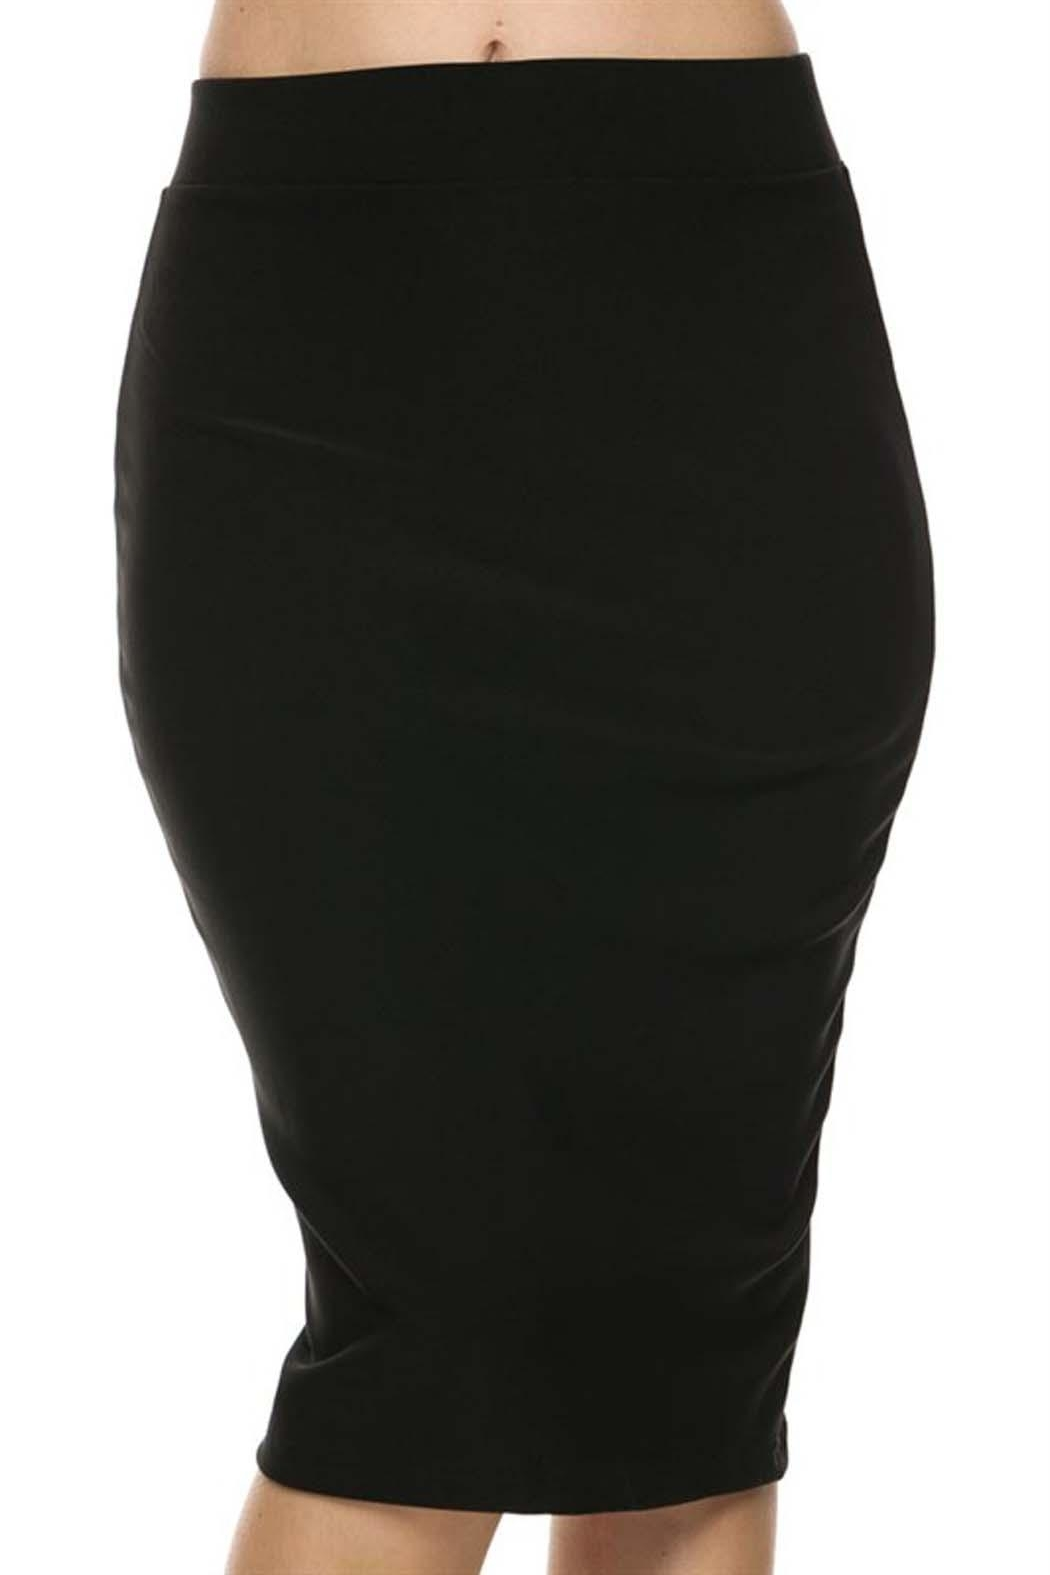 b35258e804 New Mix Scuba Pencil Skirt from New York by Avenue A — Shoptiques